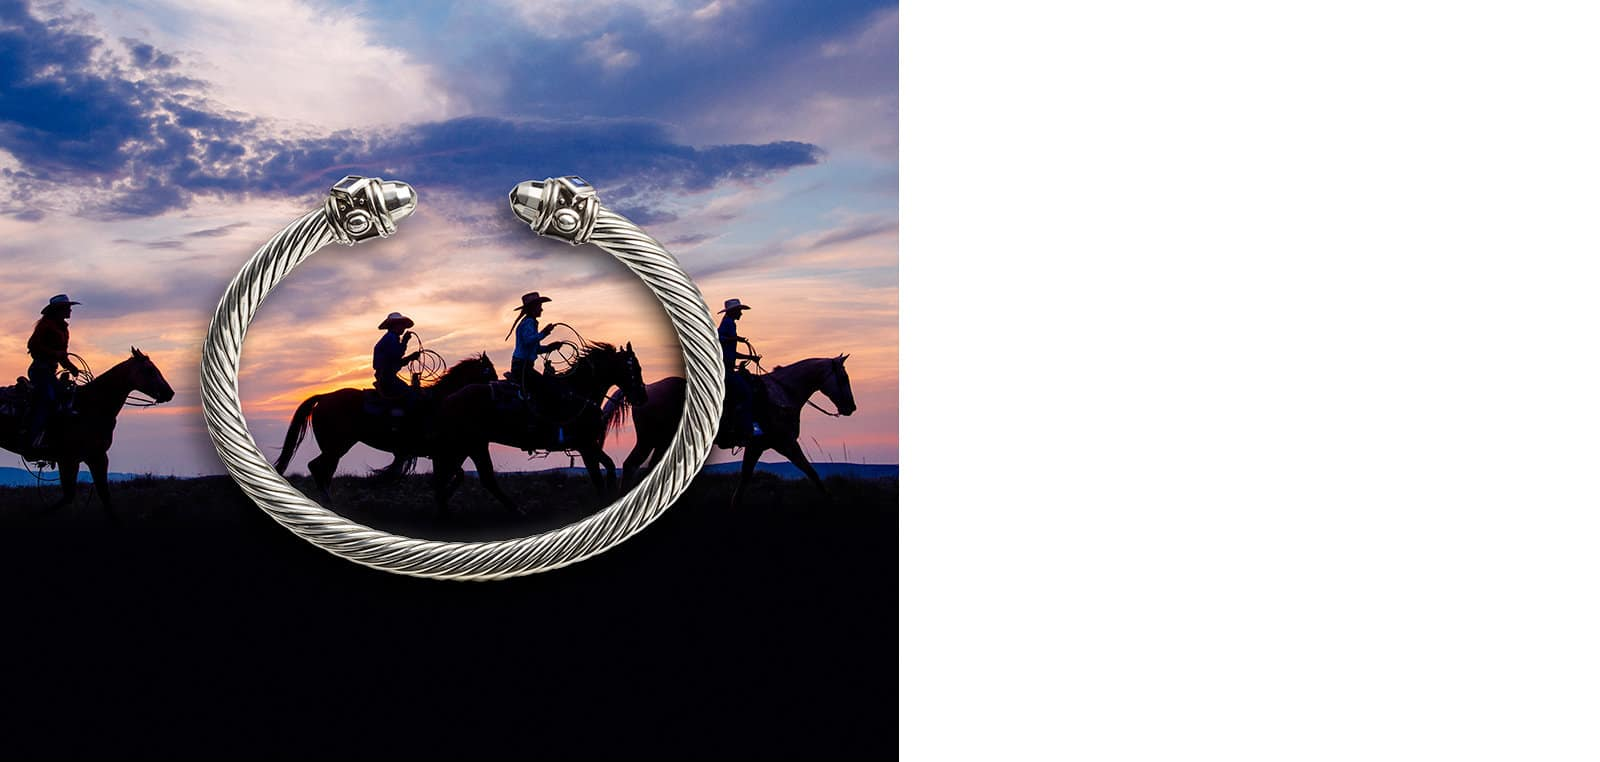 A David Yurman Renaissance Collection bracelet in sterling silver with sapphires atop a photo of cowboys riding horses at sunset.